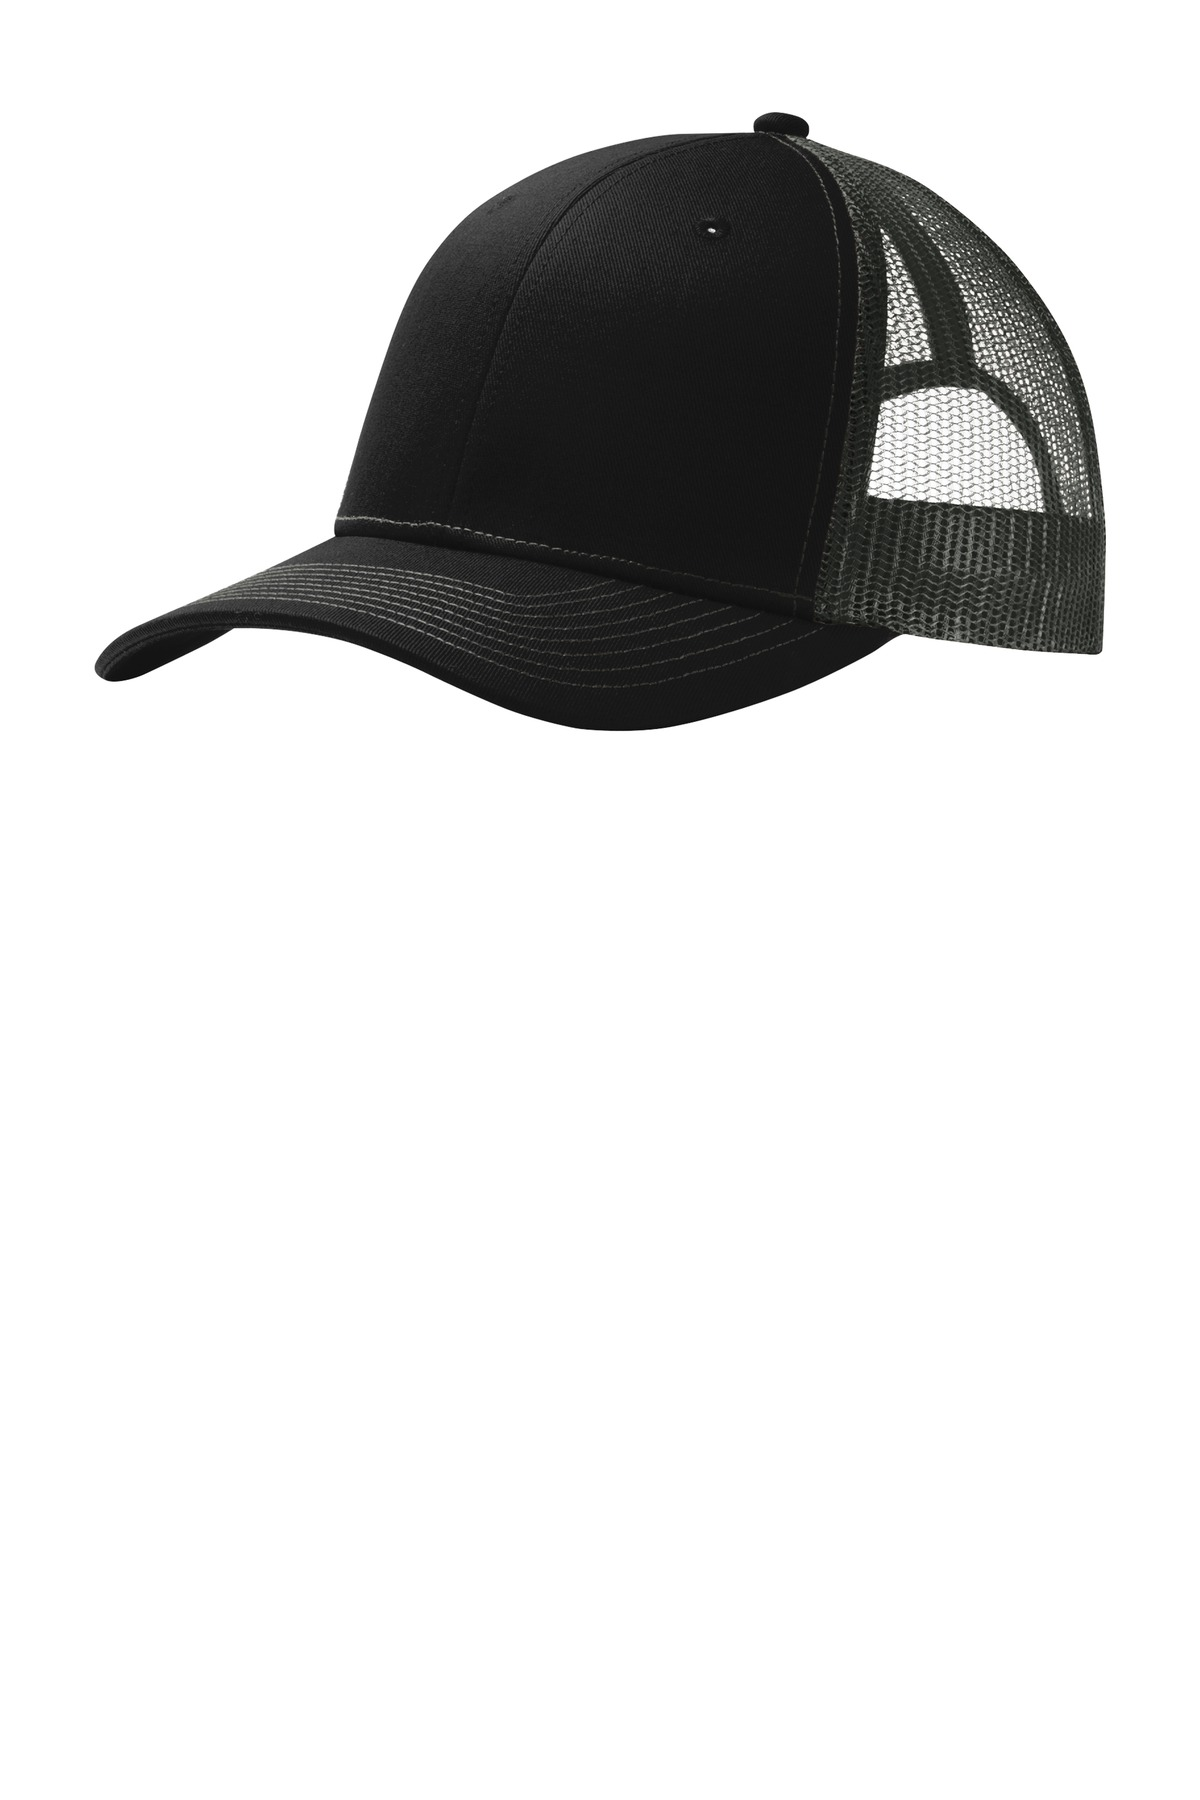 Port Authority ®  Snapback Trucker Cap. C112 - Black/ Grey Steel